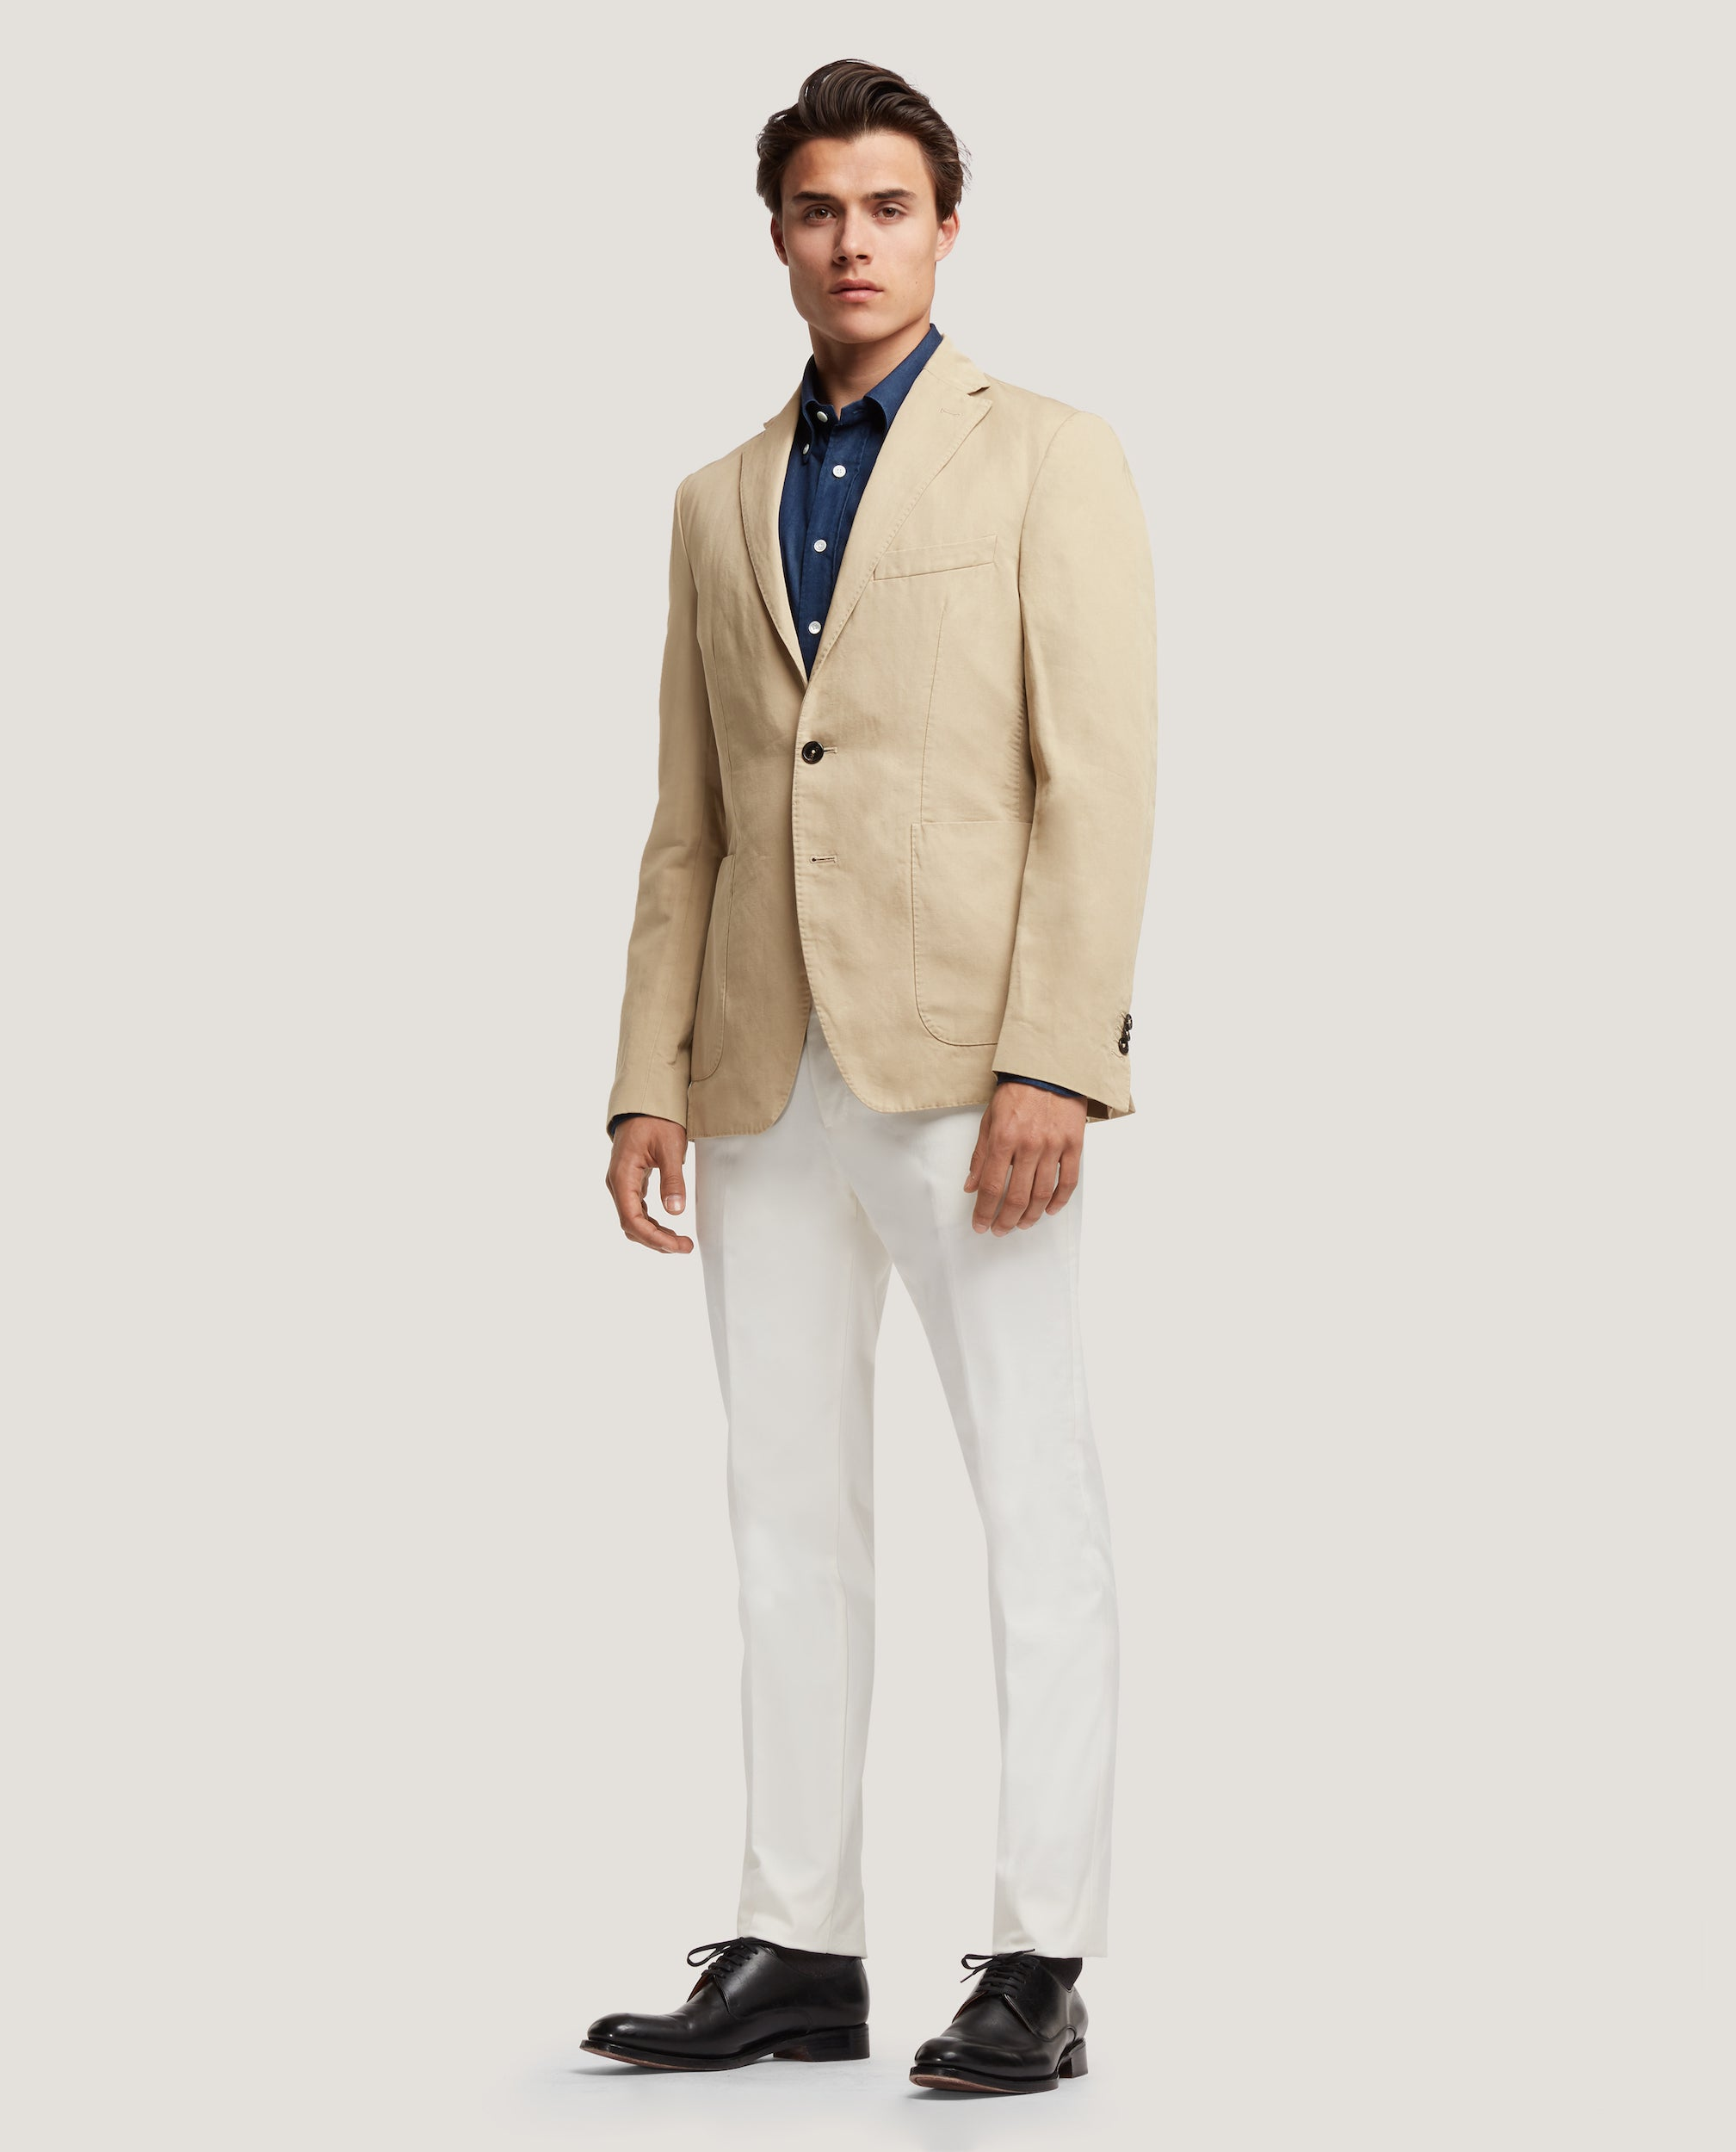 ROSS&GEHRY Summer suit | Cotton Linen | Beige